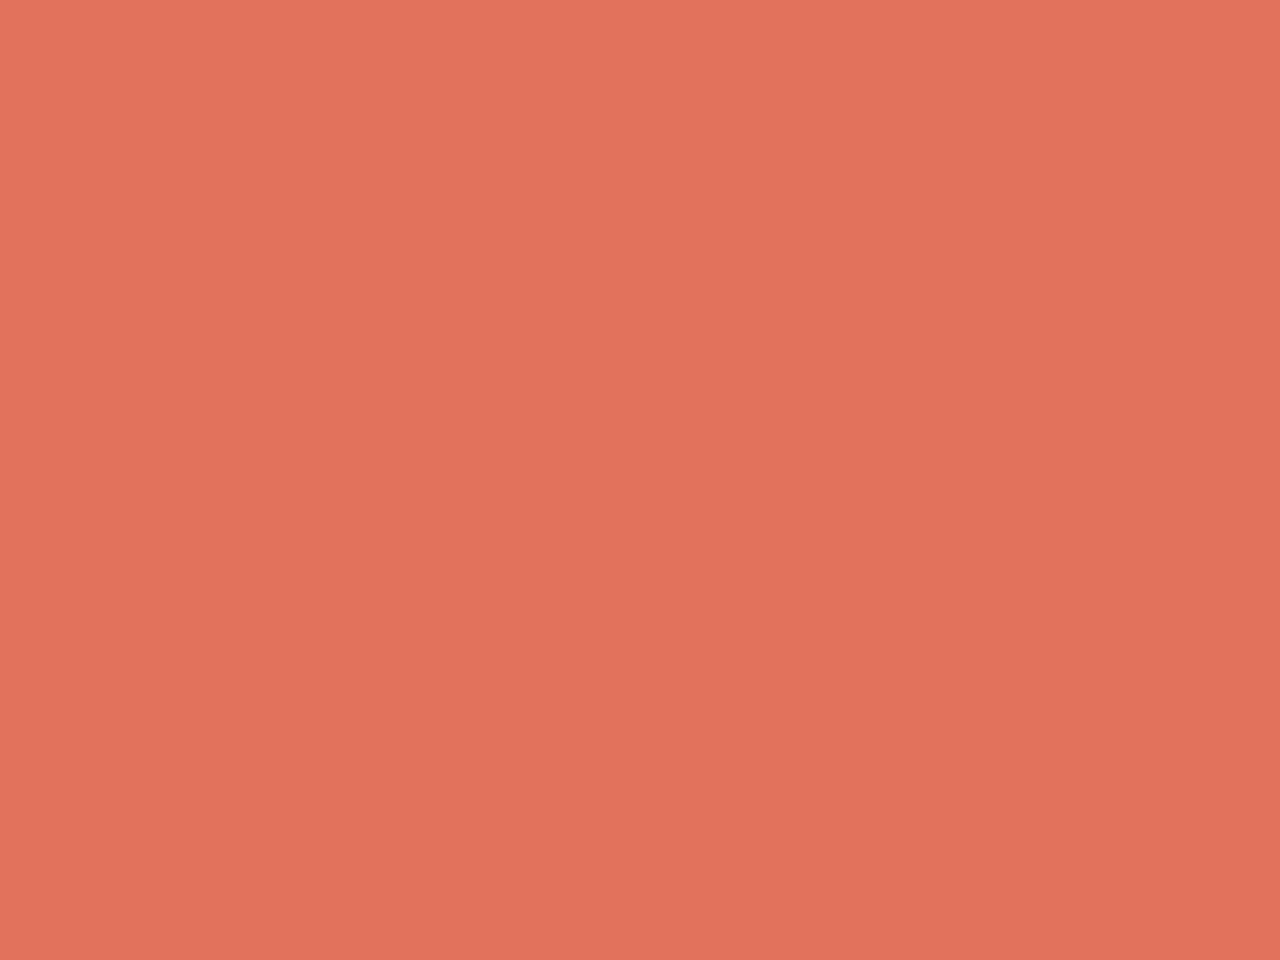 1280x960 Terra Cotta Solid Color Background